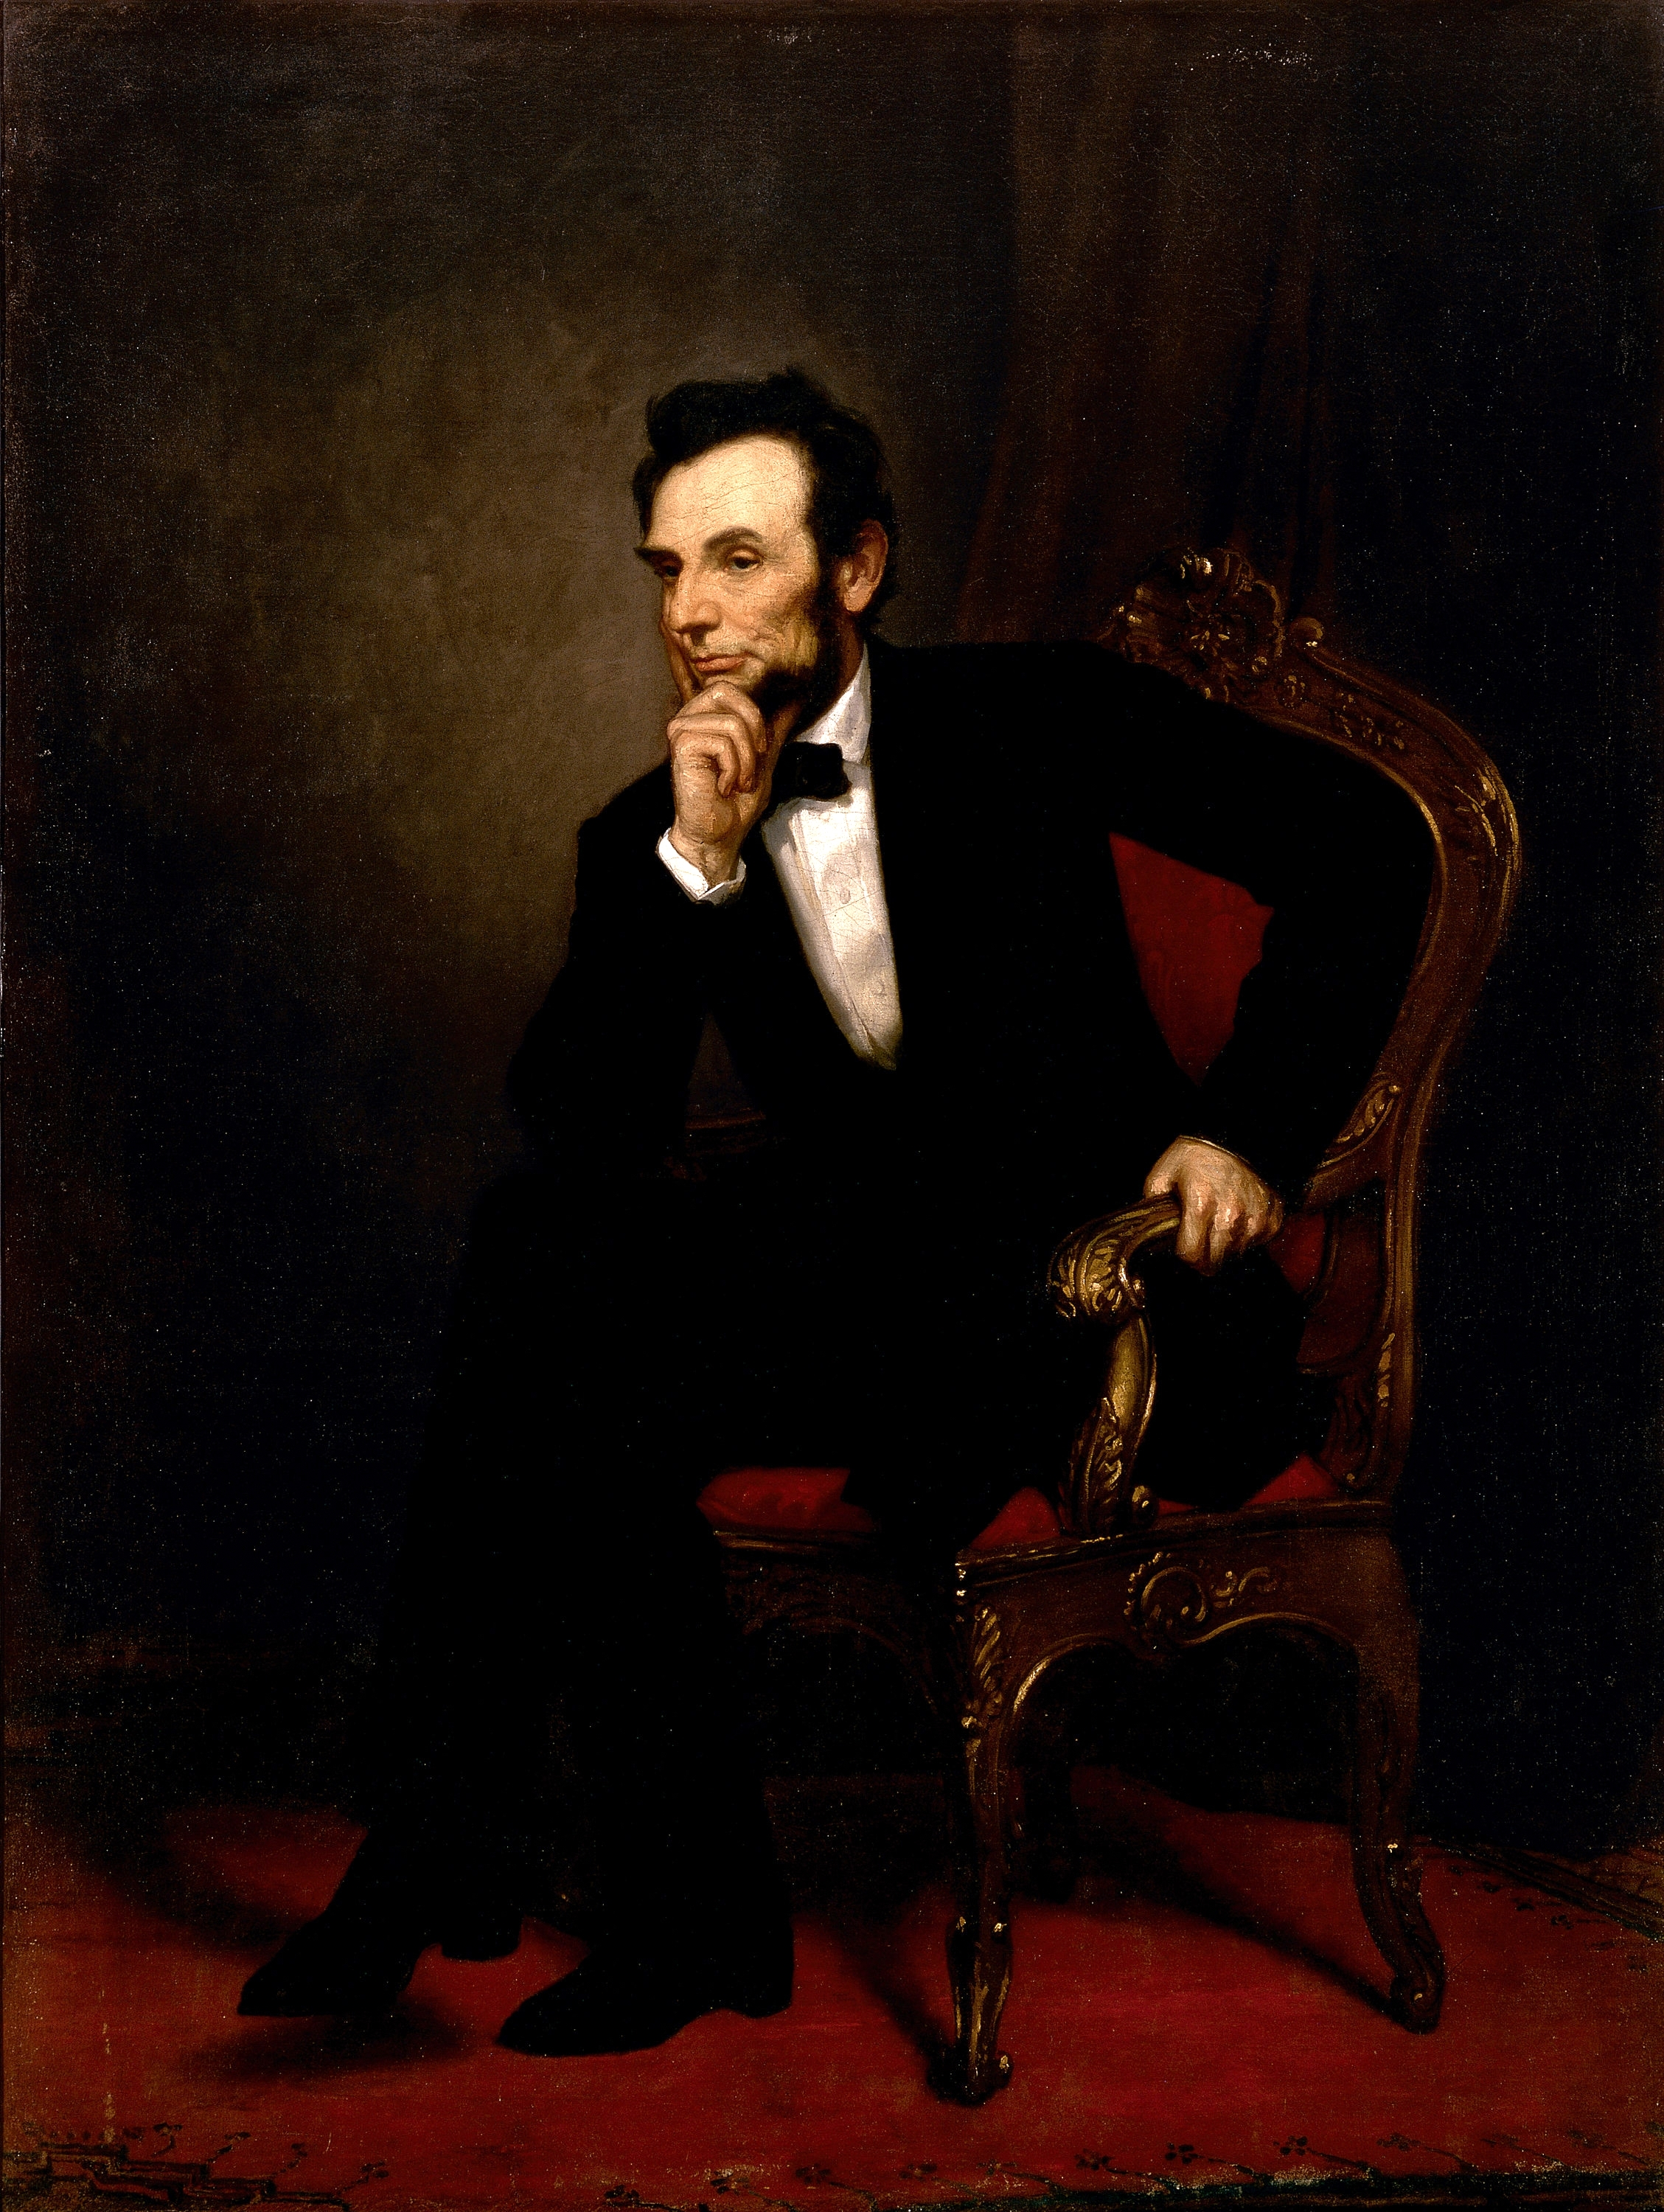 https://i2.wp.com/upload.wikimedia.org/wikipedia/commons/5/5f/Abraham_Lincoln_by_George_Peter_Alexander_Healy.jpg